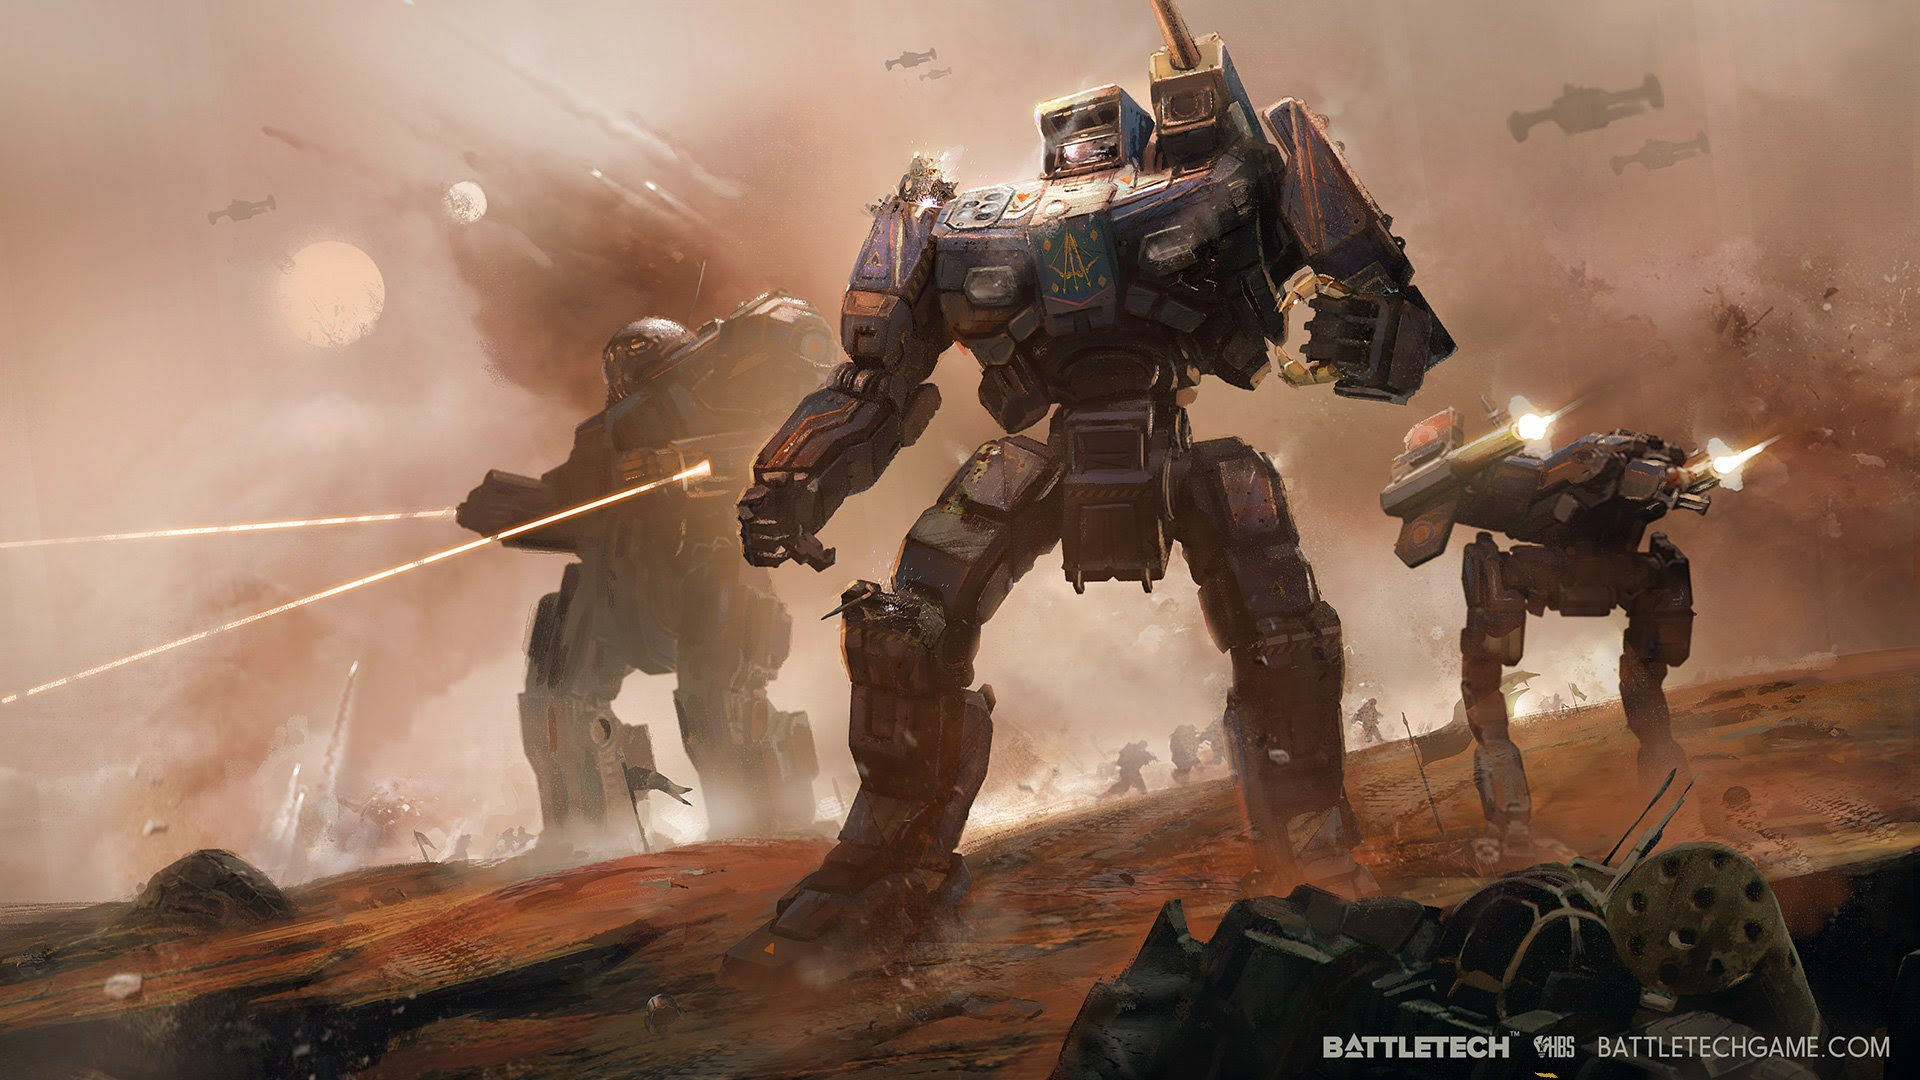 BattleTech lets you unload mech mayhem, XCOM style screenshot